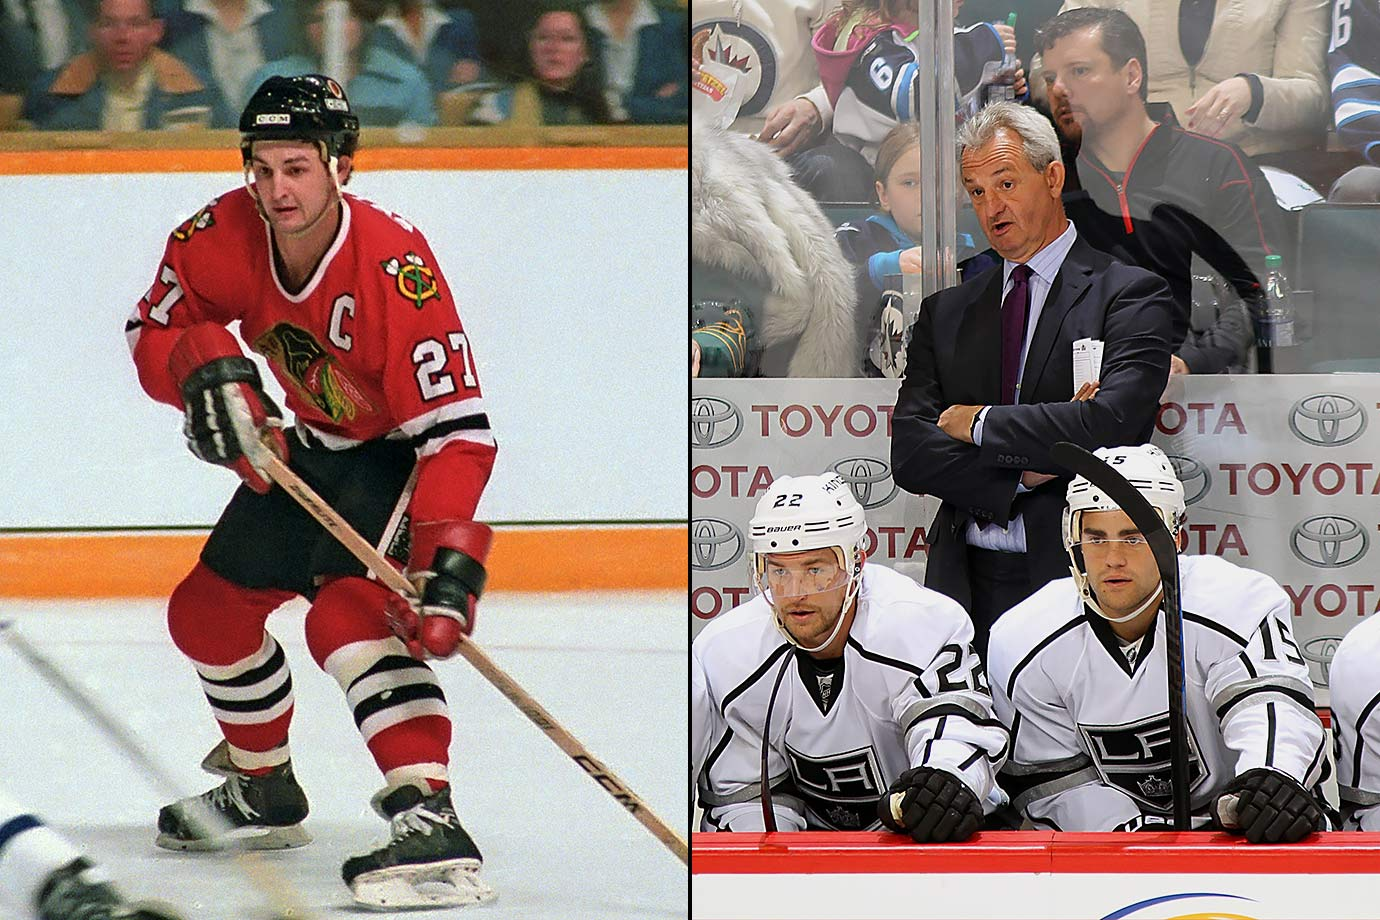 The second of the six Sutter brothers to reach the NHL, Darryl was an 11th round pick by Chicago in 1978. He spent a season playing in Japan before scoring 40 goals for the Blackhawks as a rookie in 1980-81. He later broke Bobby Hull's team record for most goals during a playoff season (12, in 1984-85). A litany of injuries ended his playing career at age 29. Through five seasons as head coach of the Los Angeles Kings, Sutter is 186-112-45 with two Stanley Cups.